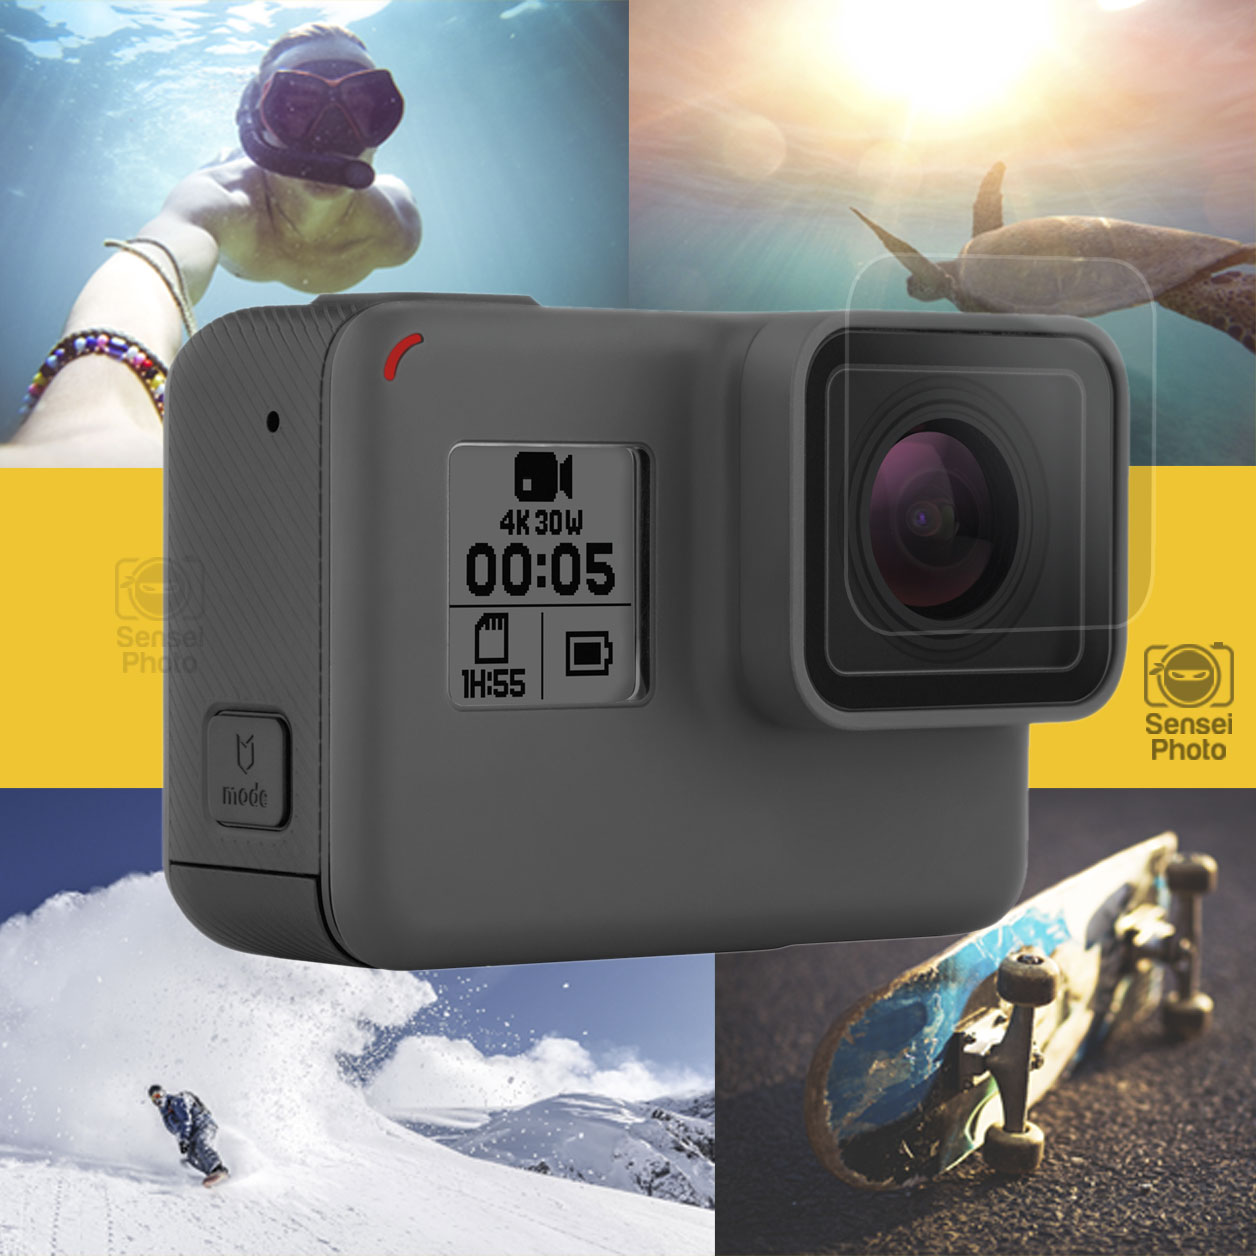 5 vv Tempered-Glass LCD Screen Protector /& Lens Cover Cap for GoPro Hero 6